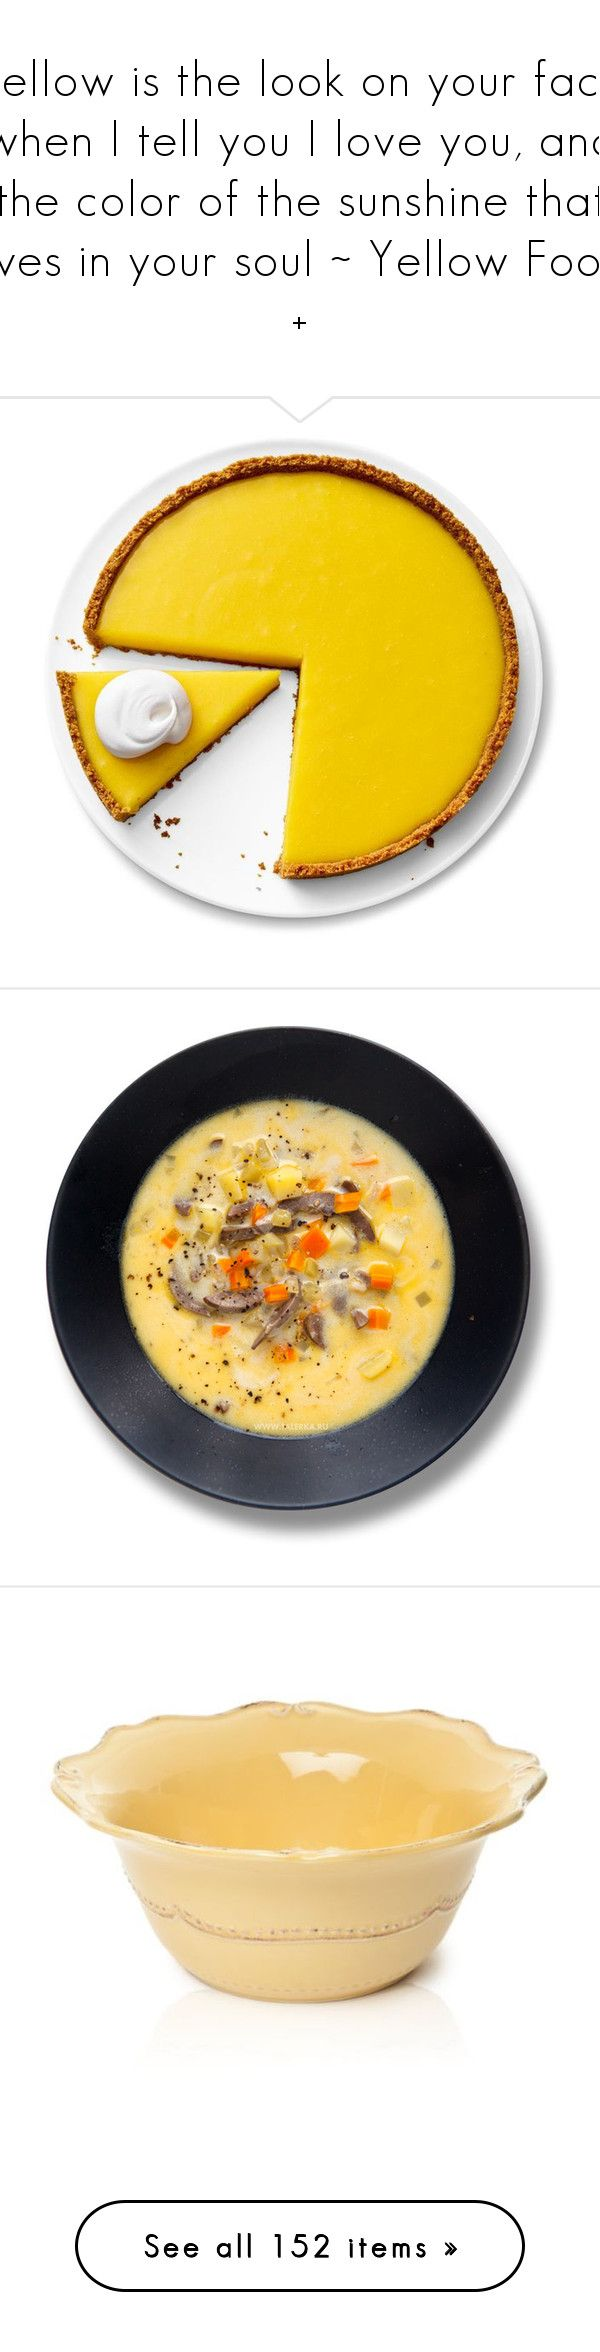 """""""Yellow is the look on your face when I tell you I love you, and the color of the sunshine that lives in your soul ~ Yellow Food +"""" by emili41207 on Polyvore featuring food, fillers, food & drink, home, kitchen & dining, serveware, light yellow, dinnerware, decor and kitchen"""